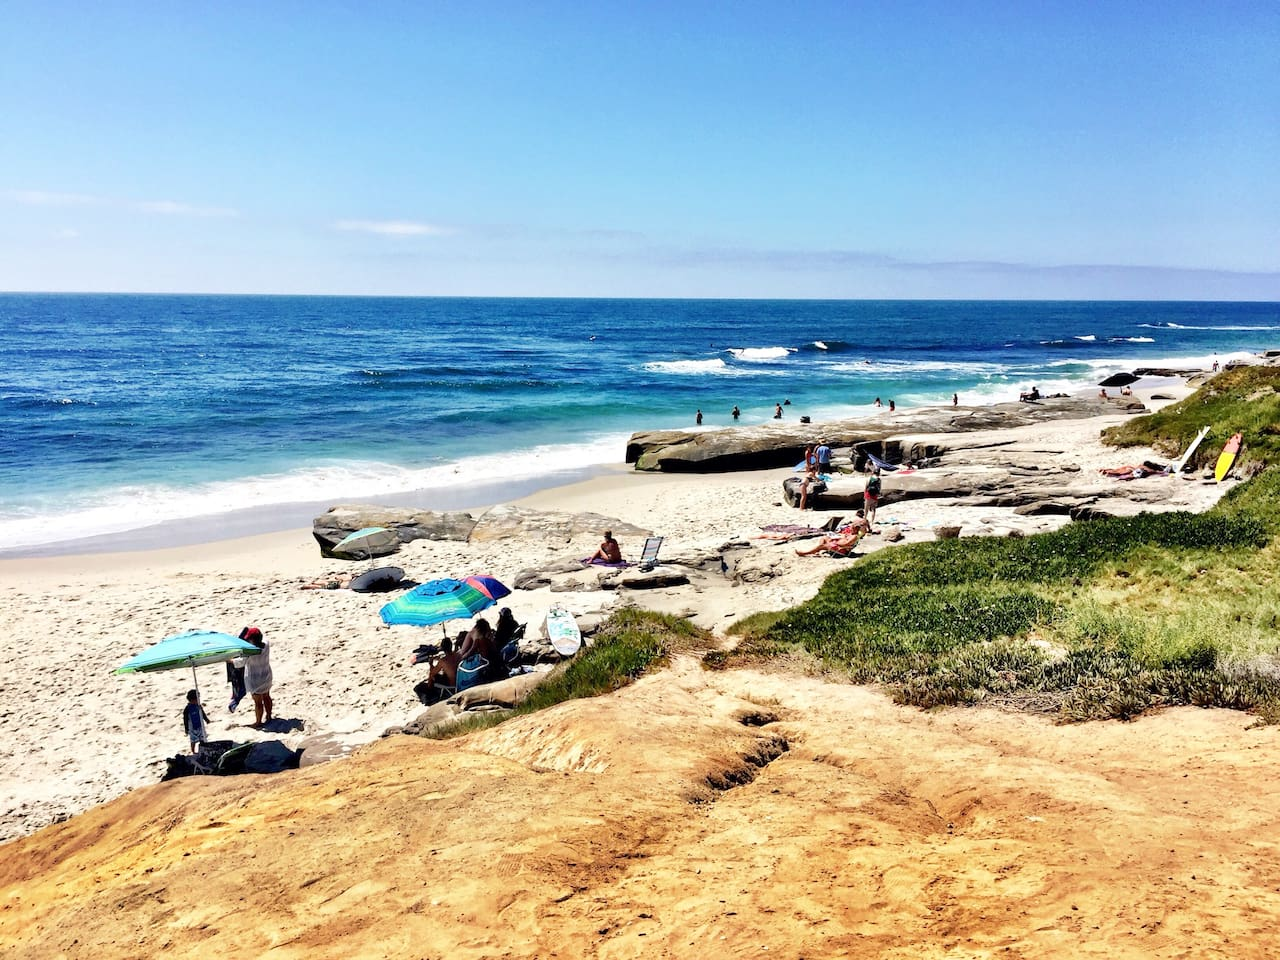 Windansea Beach, Bird Rock, La Jolla Village and Shores